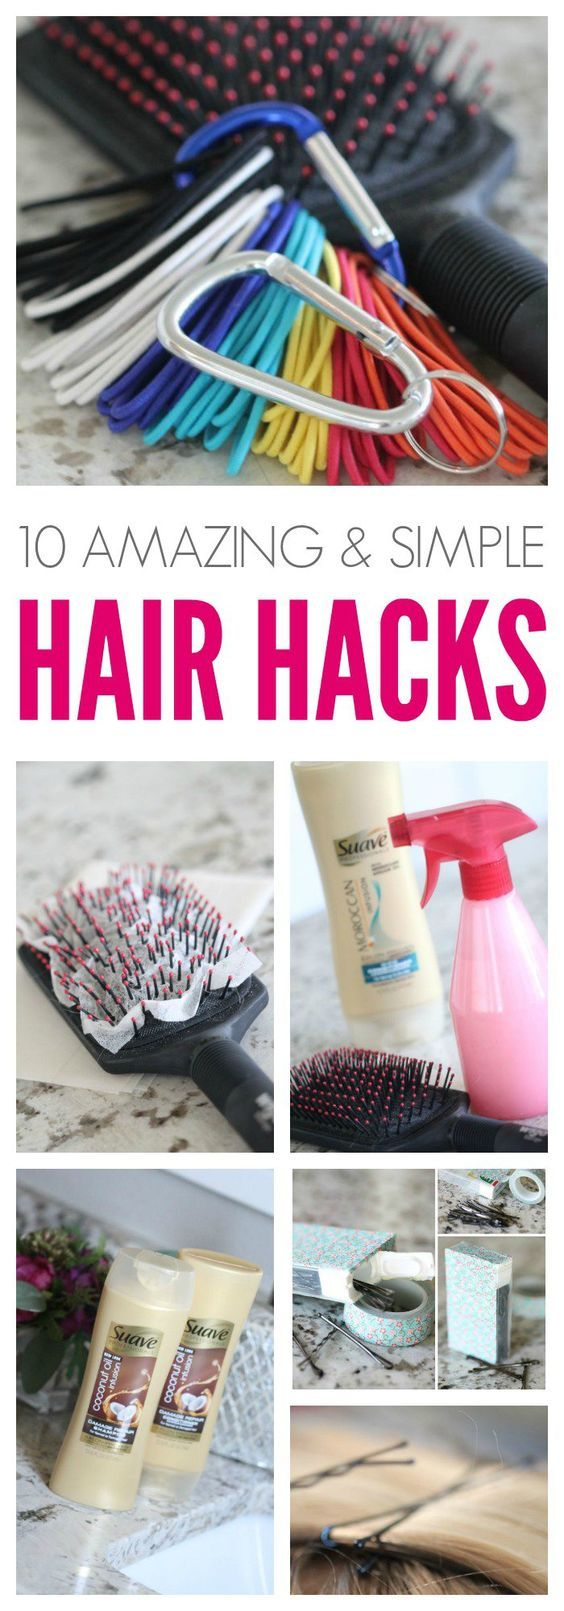 Hair Hacks that Will Blow Your Mind! 10 Hair Hacks that are simple and help save your time, money, and sanity!